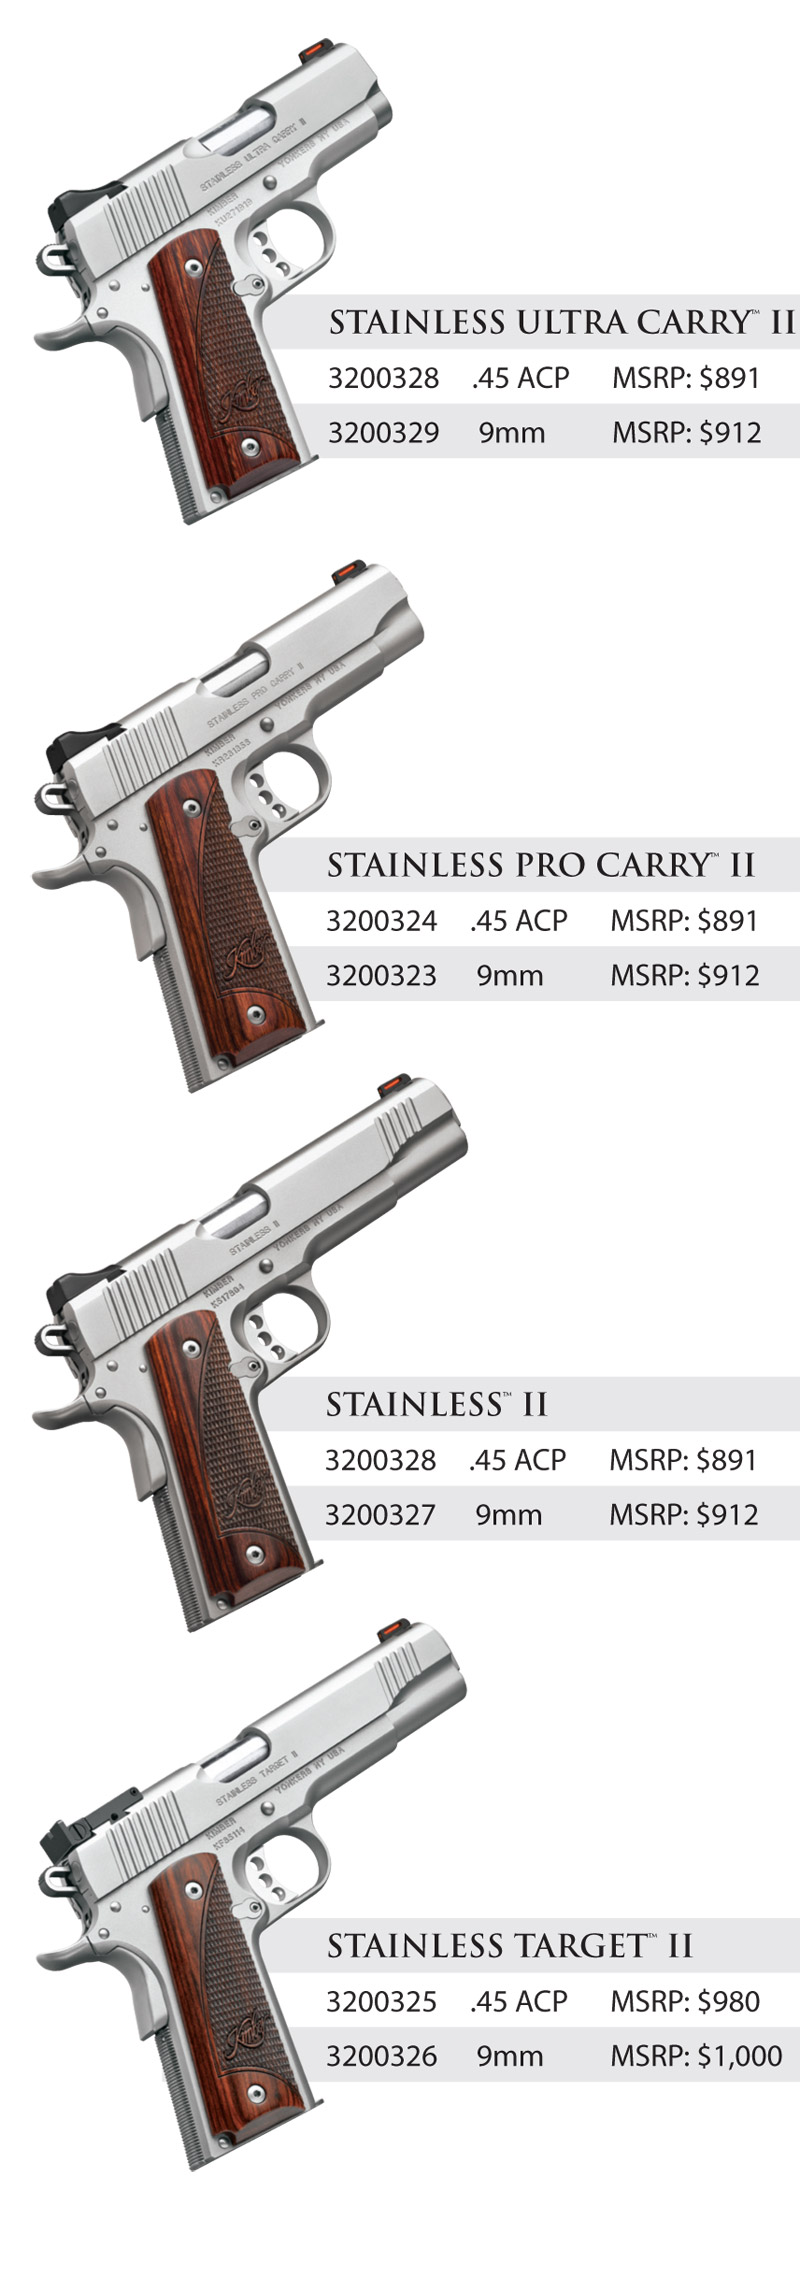 Kimber Stainless II Family Updates for 2017